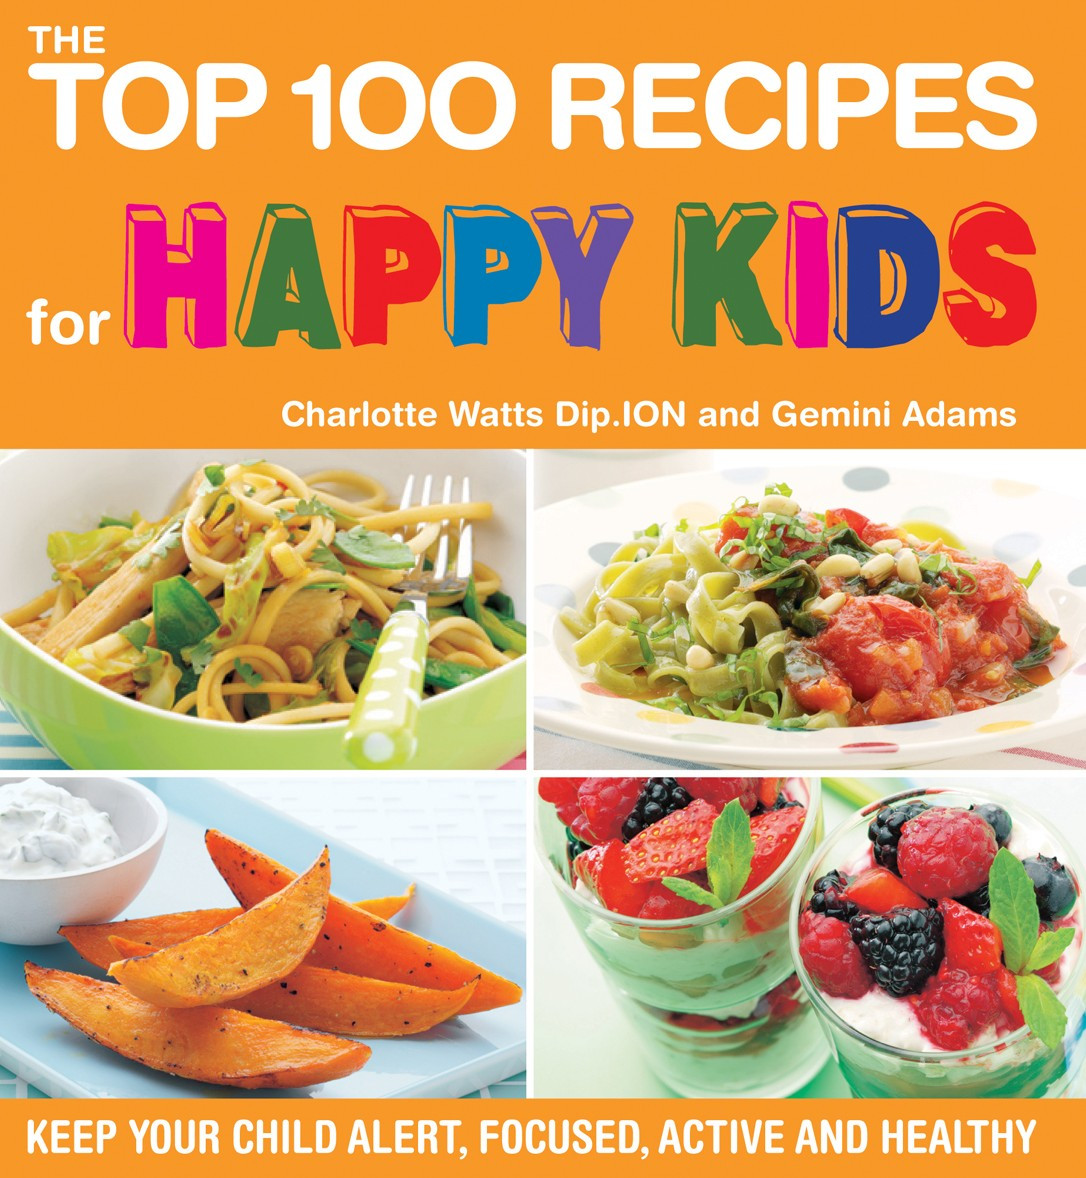 Healthy Recipes For Children  The Top 100 Recipes for Happy Kids Healthy Food